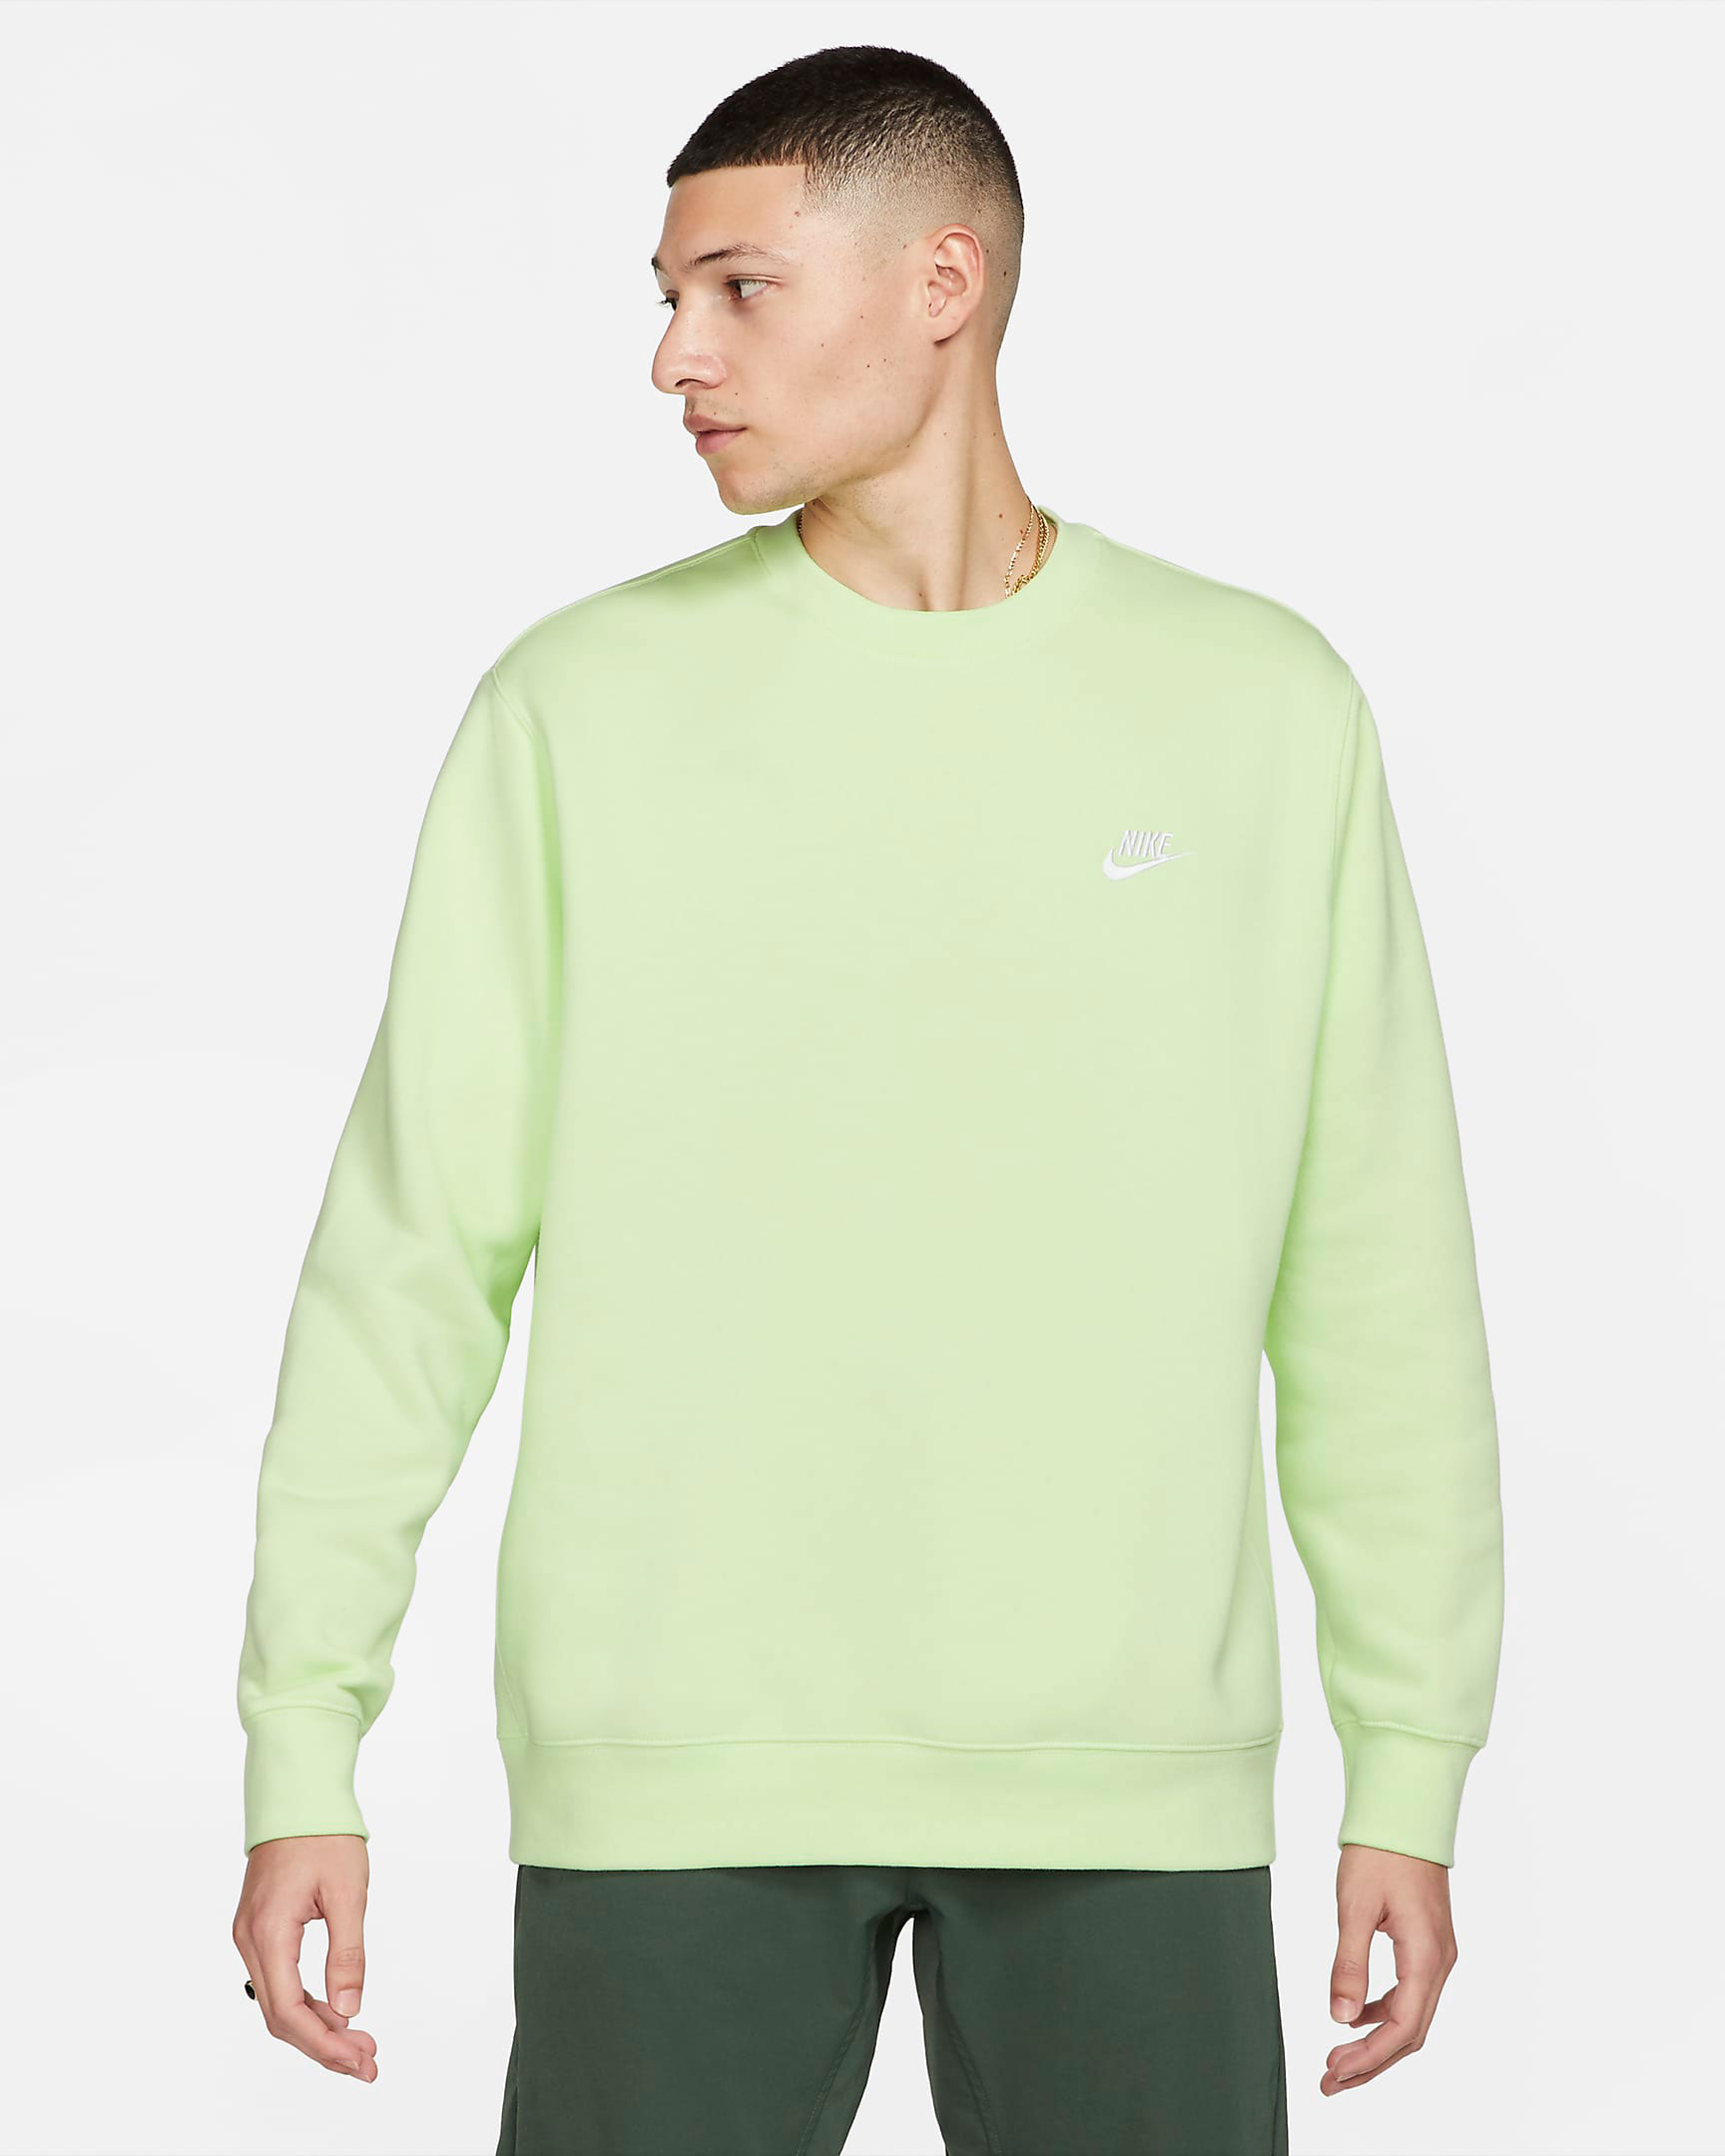 nike-club-fleece-crew-sweatshirt-light-liquid-lime-volt